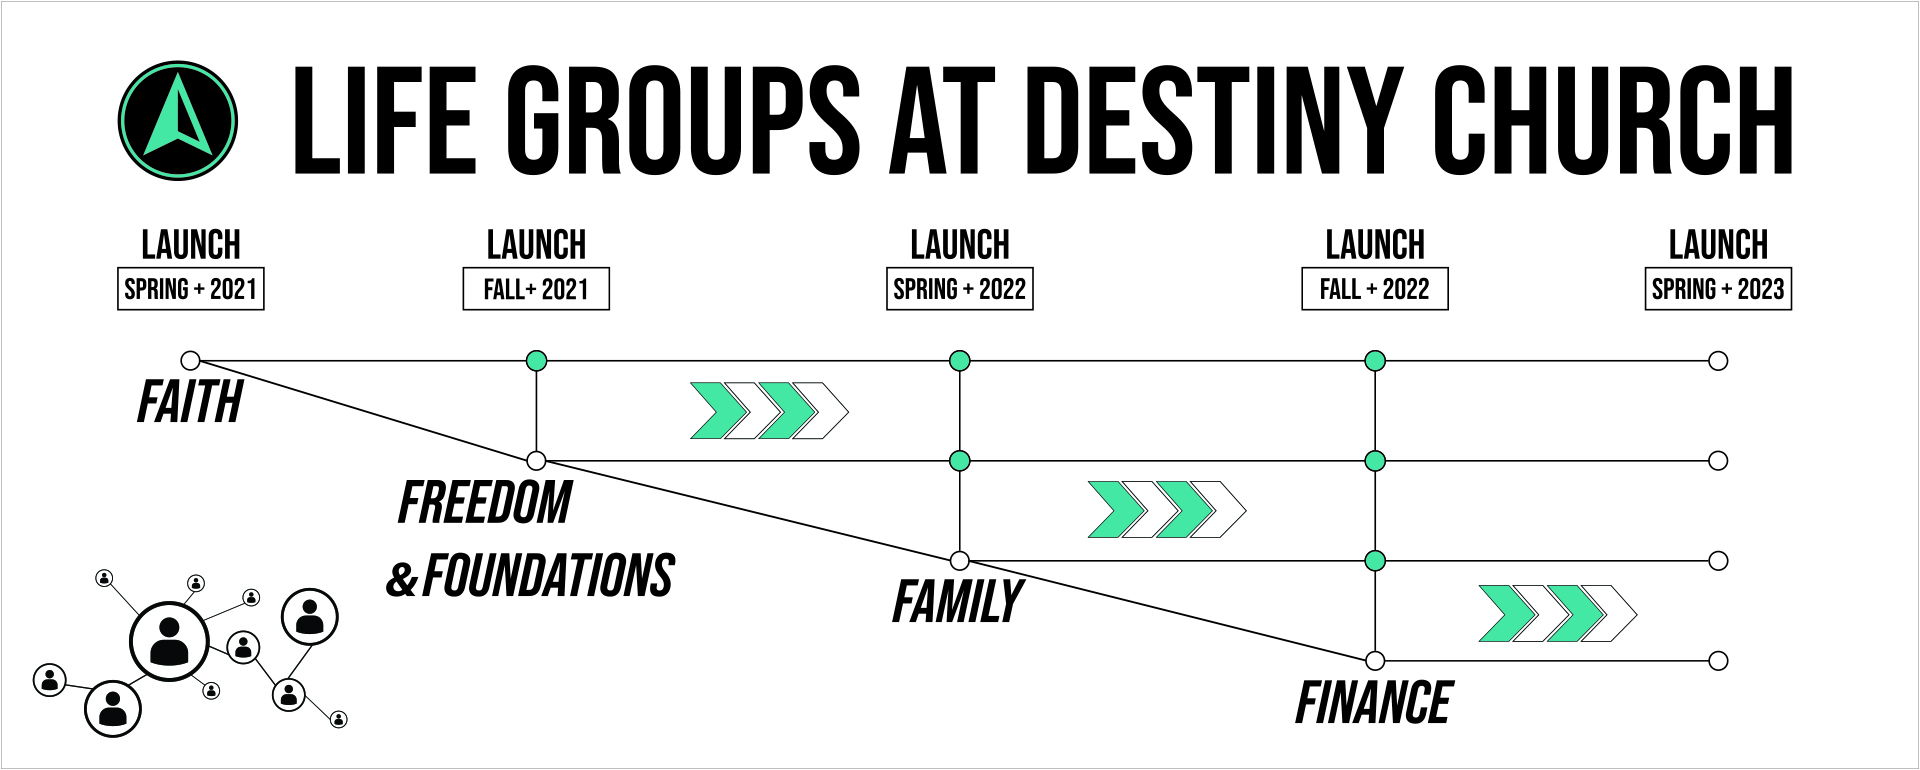 The timeline of Life Groups through the end of 2022.